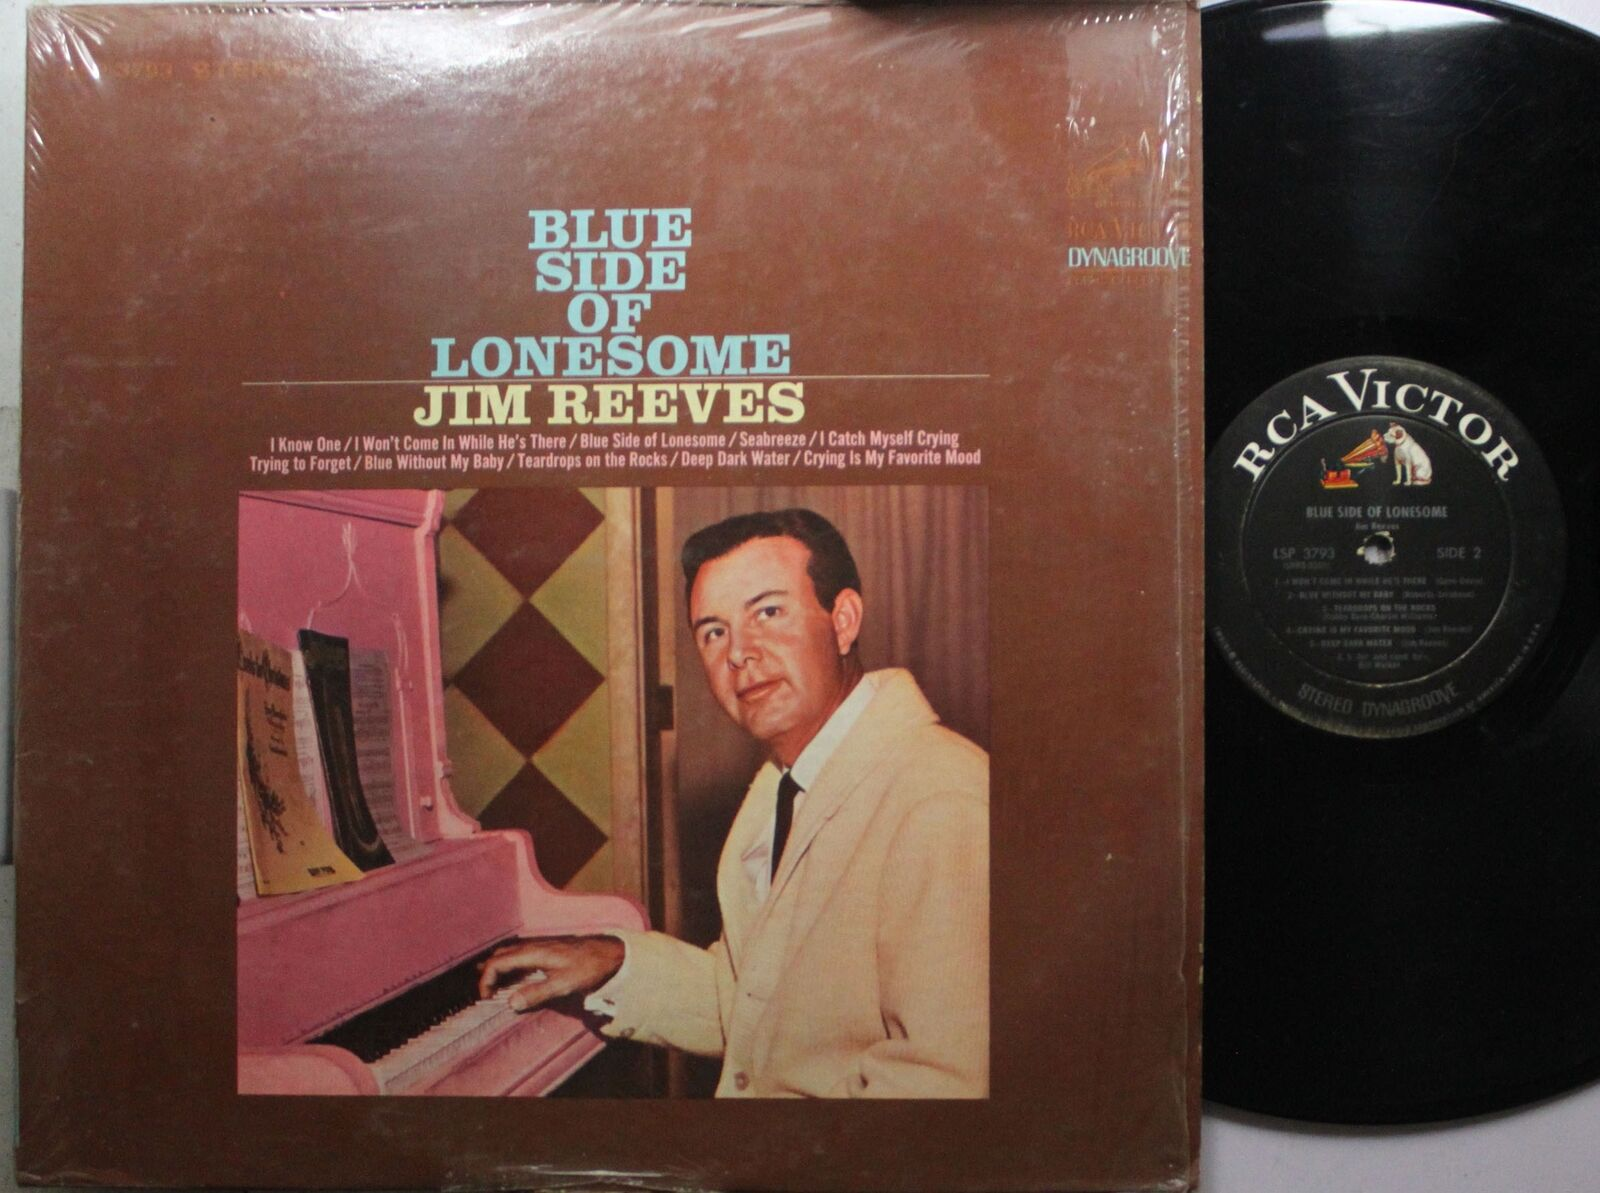 Country Lp Jim Reeves Blue Side Of Lonesome On Rca | eBay